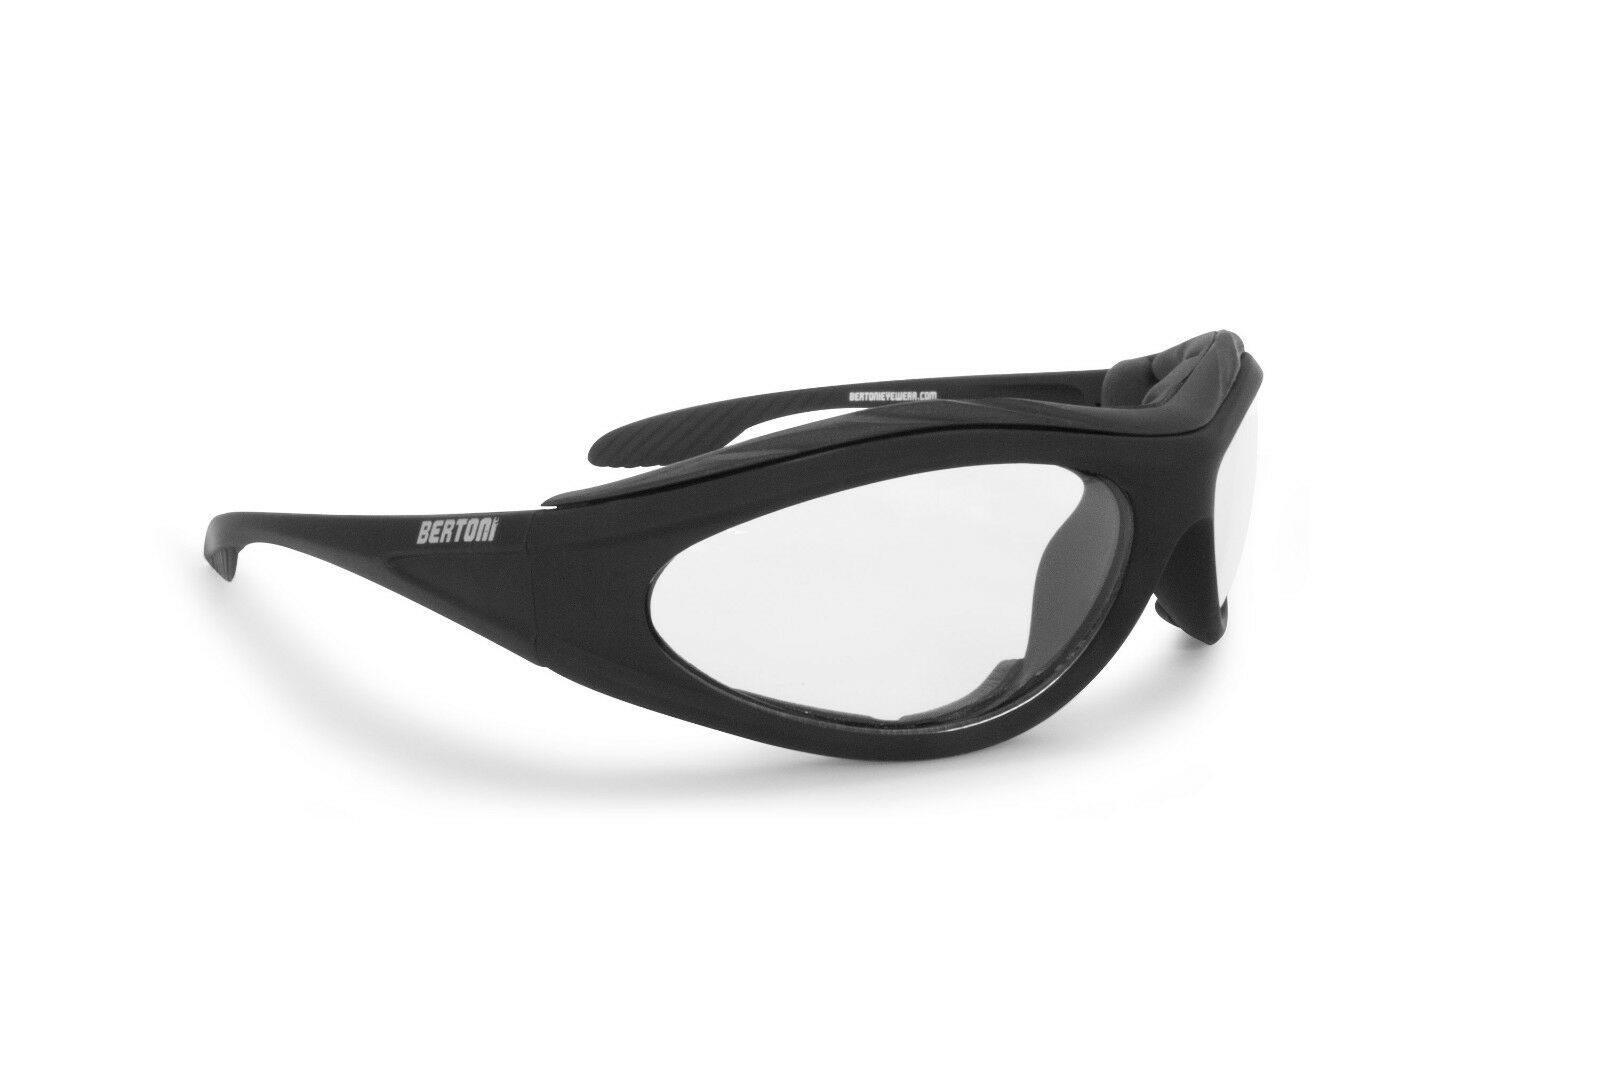 Bertoni Photochromic Sunglasses with Windproof Insert for Extreme Sports - F125